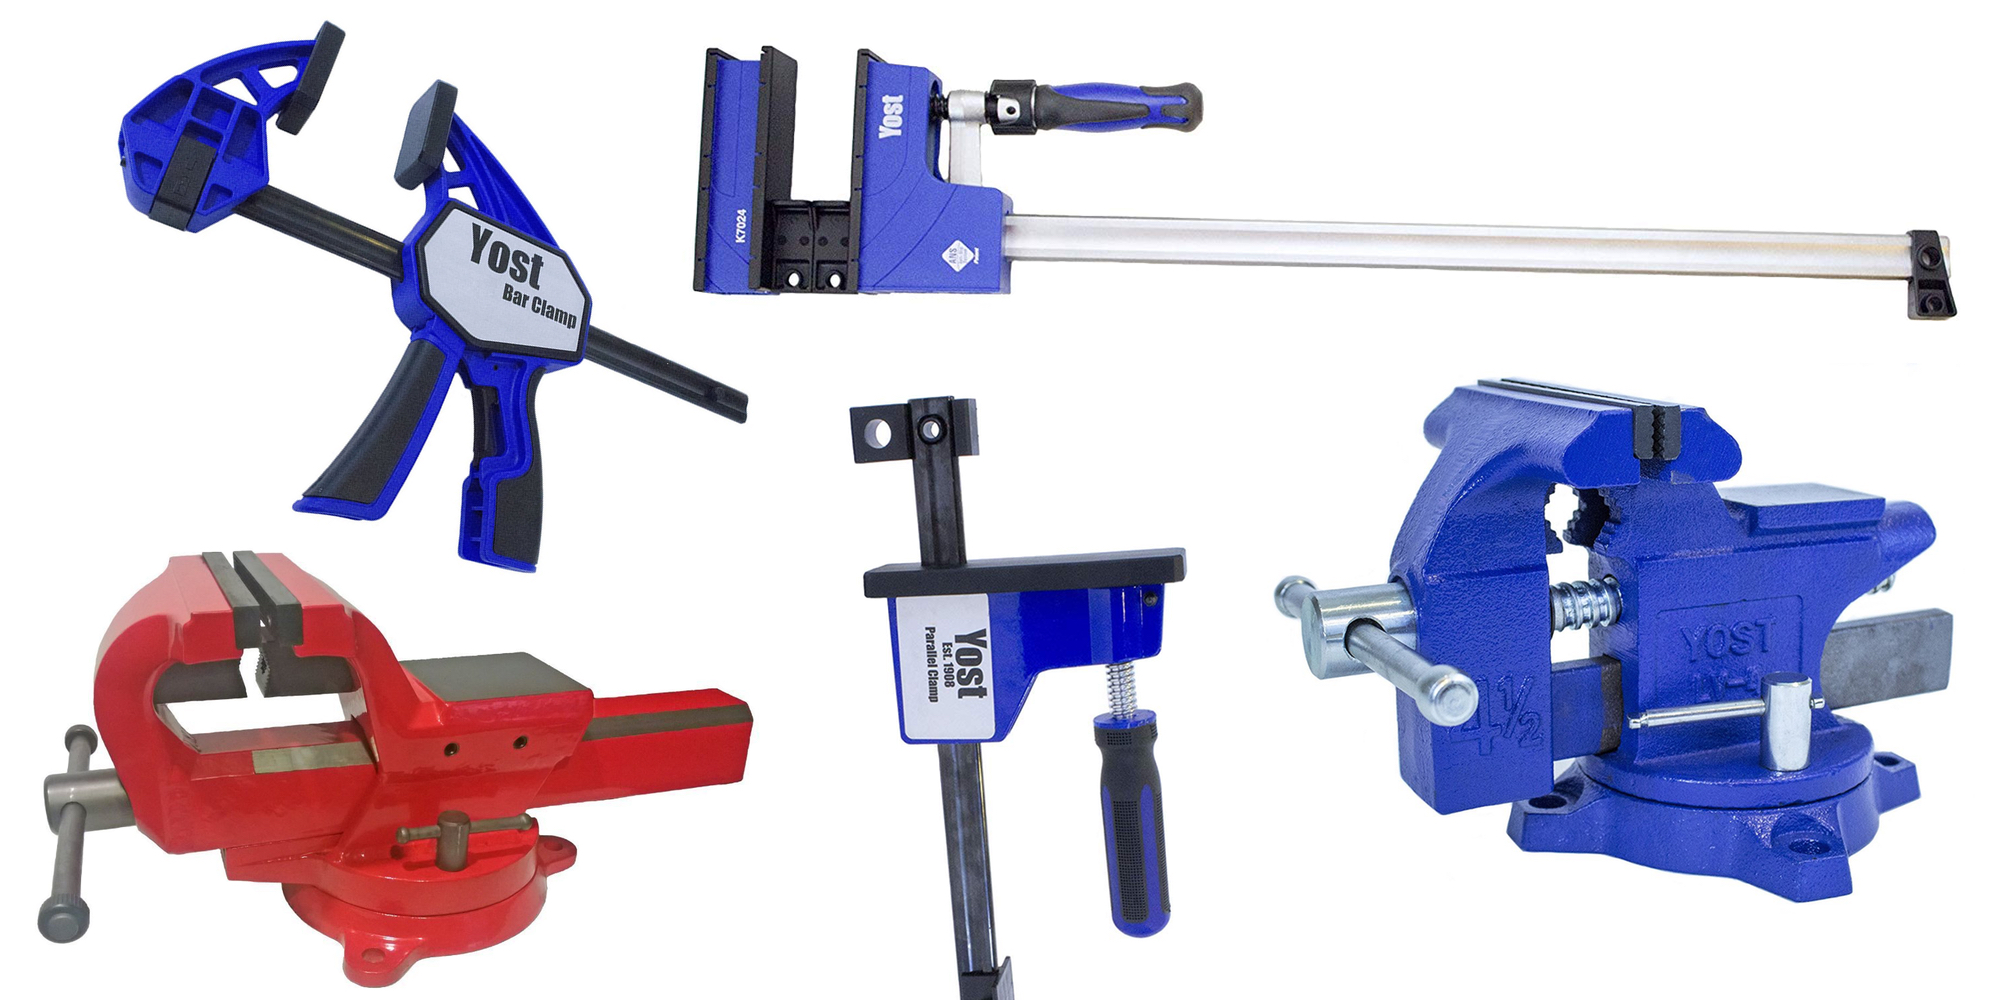 Save up to 25% on a new Yost clamp or vice from $14 Prime shipped in today's Gold Box